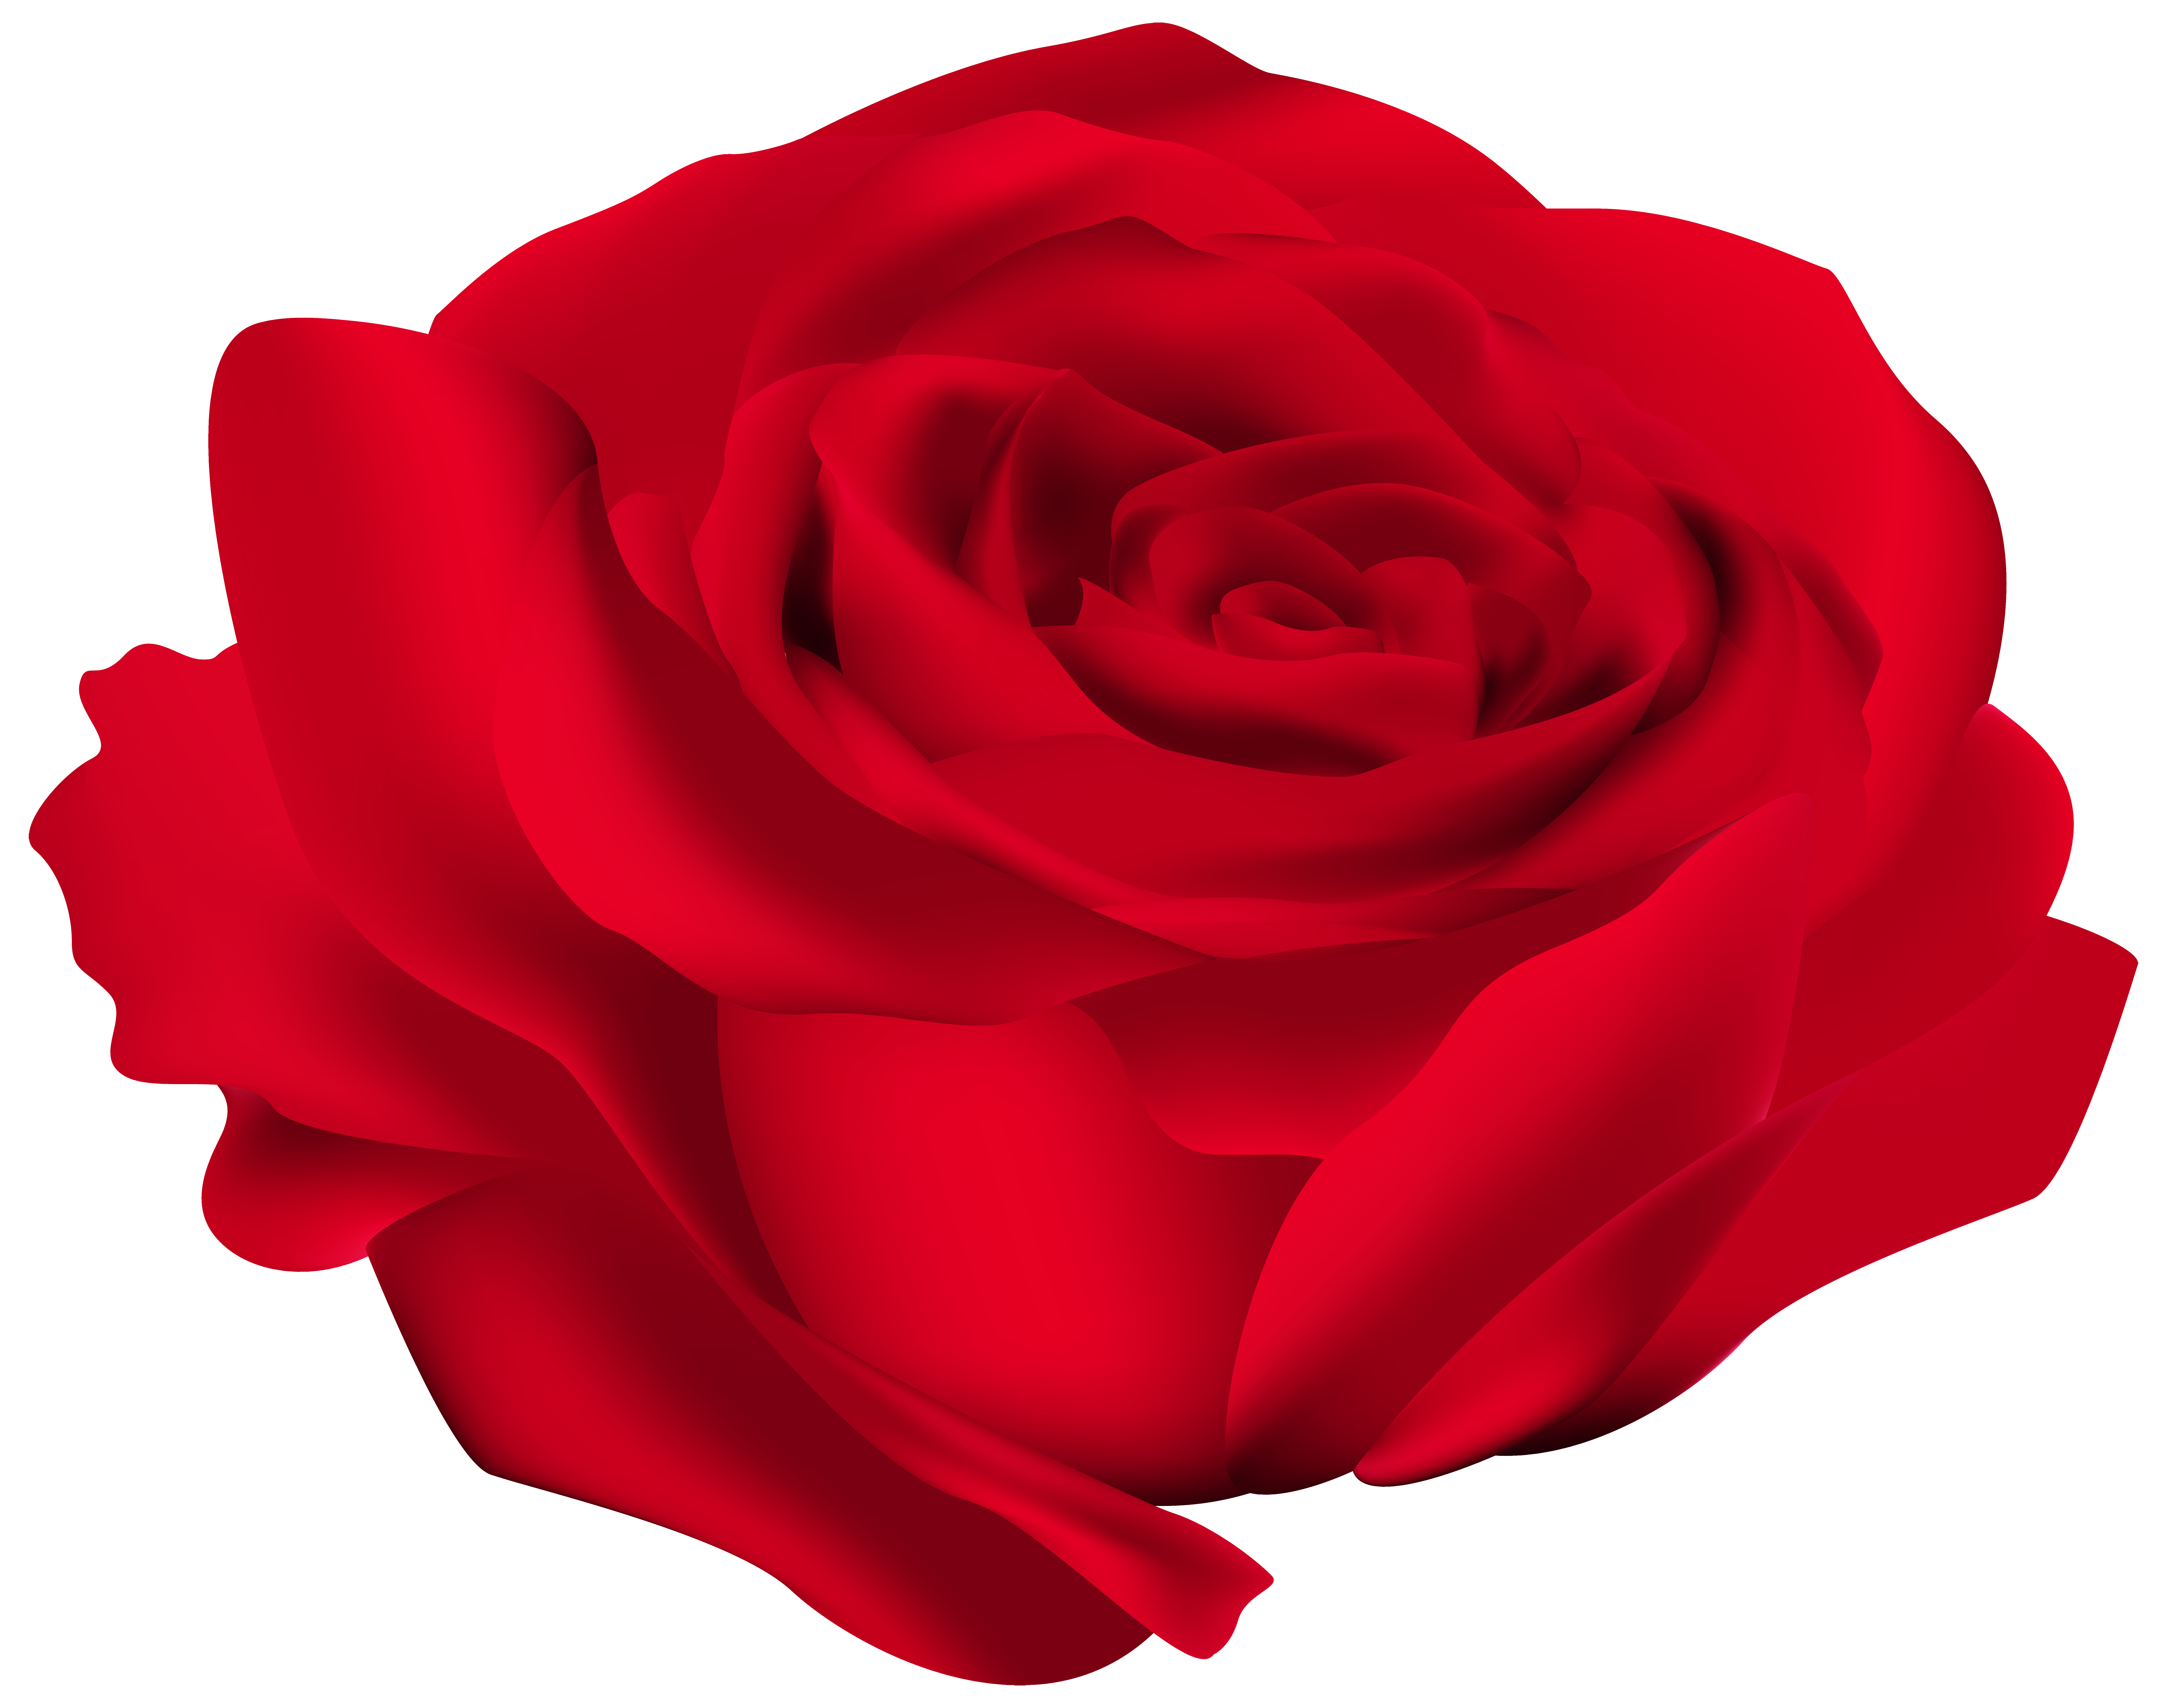 Rose png images. Red flower image gallery